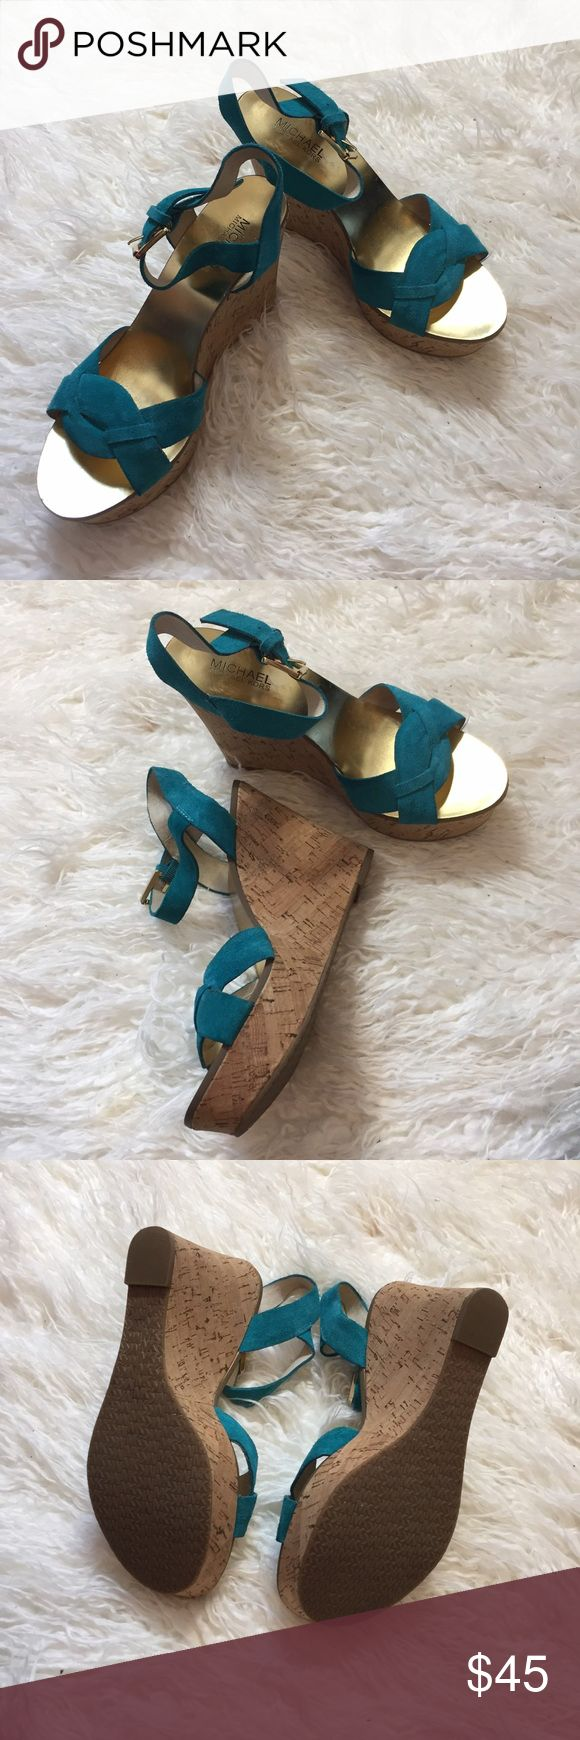 michael kors turquoise wedges turquoise & gold michael kors wedges  worn 1x for an invent. hardly any signs of wear, clean bottoms  size 7.5 Michael Kors Shoes Wedges